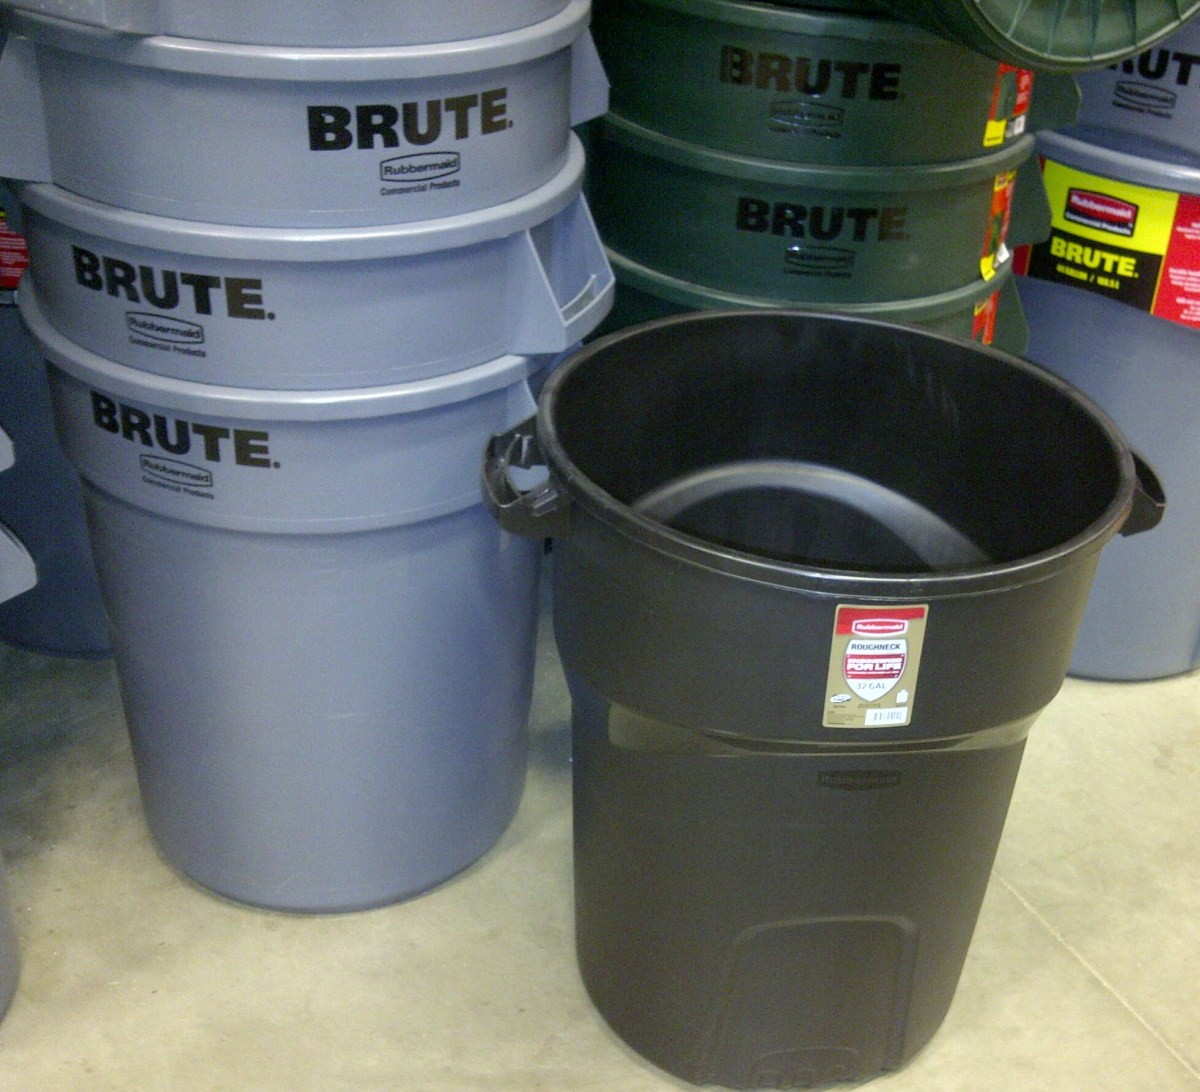 Popular Garbage Can Colors: light blue, forest green, and black